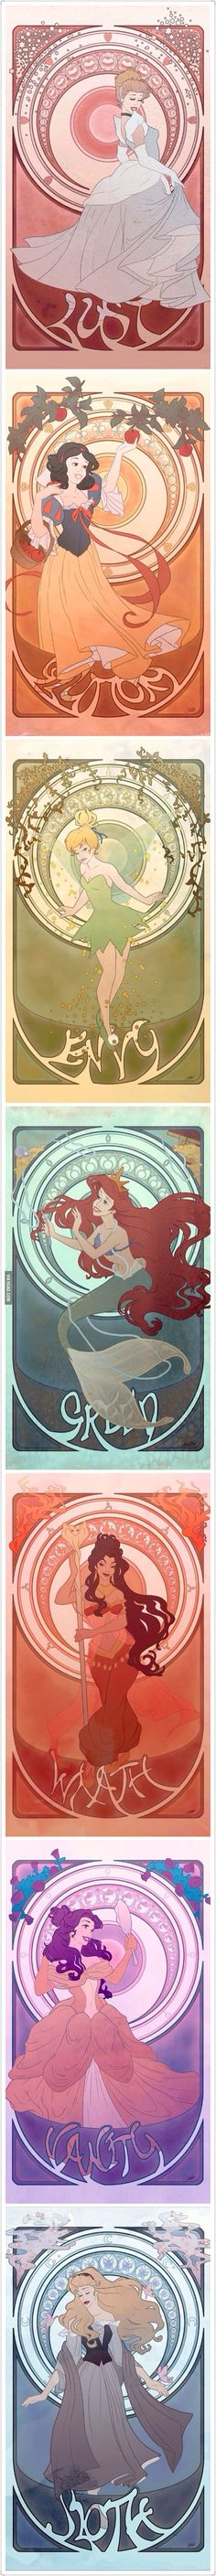 The Seven Disney Sins, This is pinned for you Kata! :D